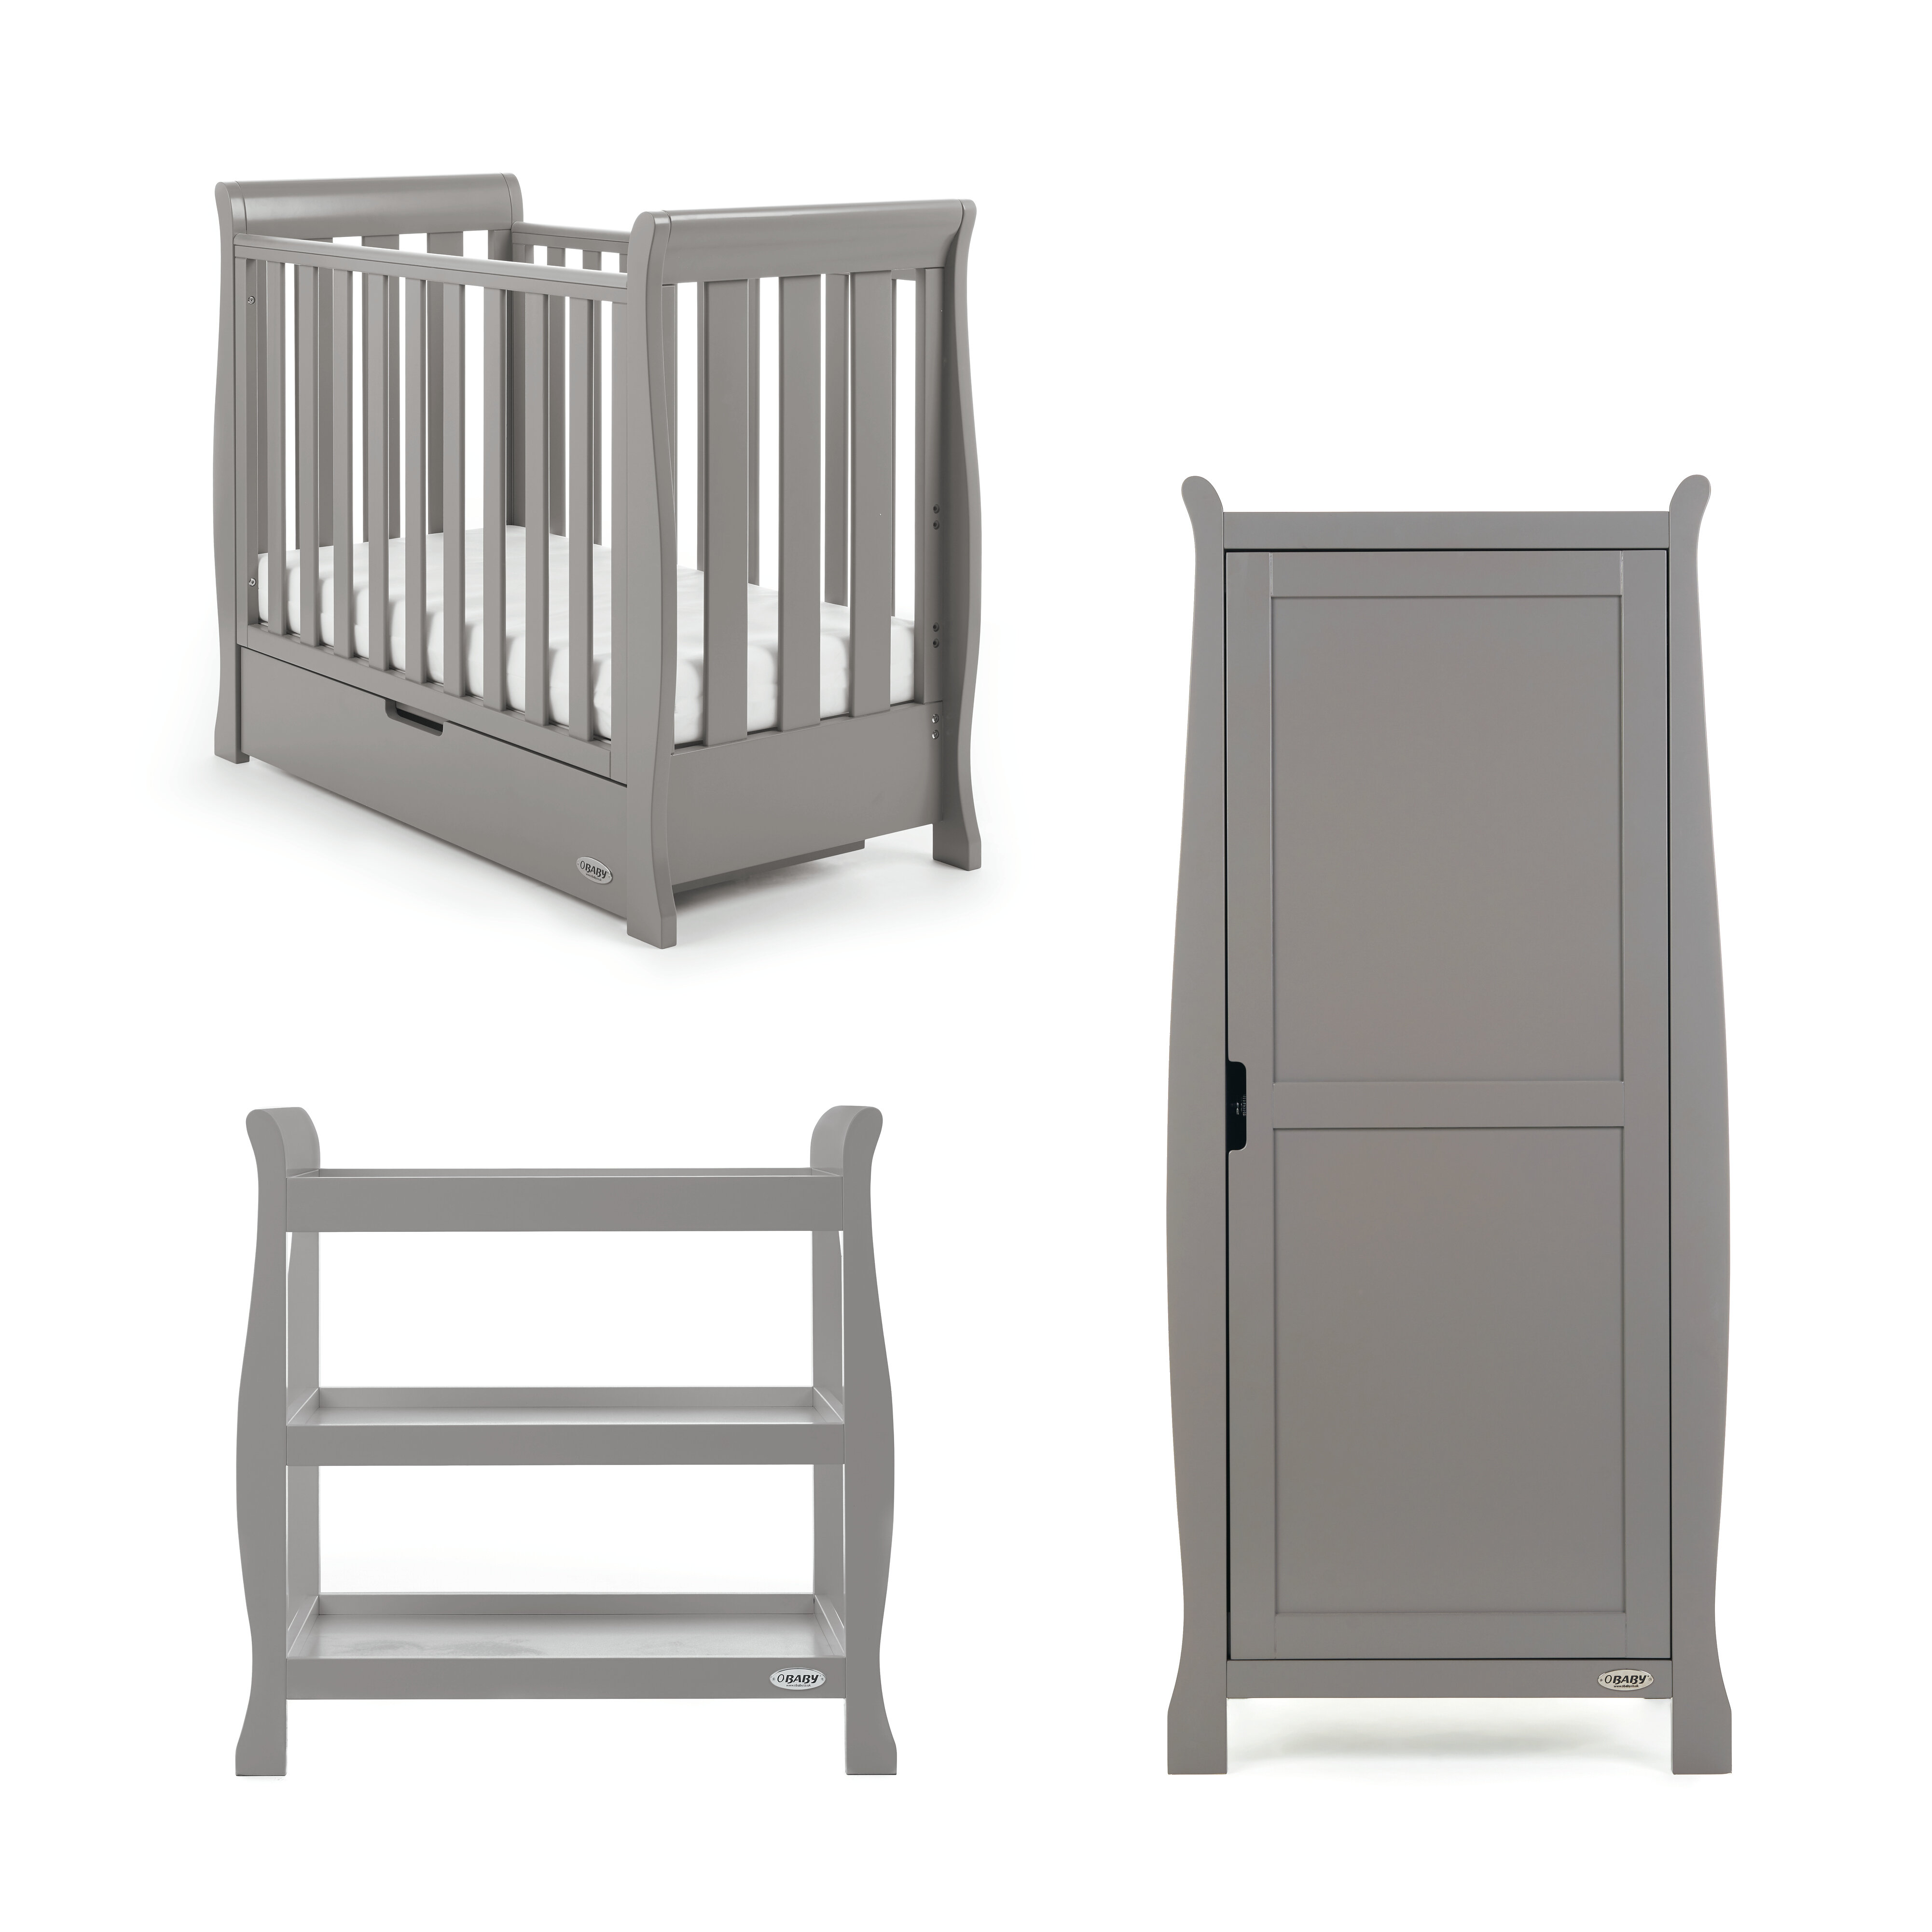 The Full Size Stella Cot Bed Offer Most Versatility With Top Rated Deluxe Sprung Mattress Matching Changer Safe And Plenty Storage For Baby